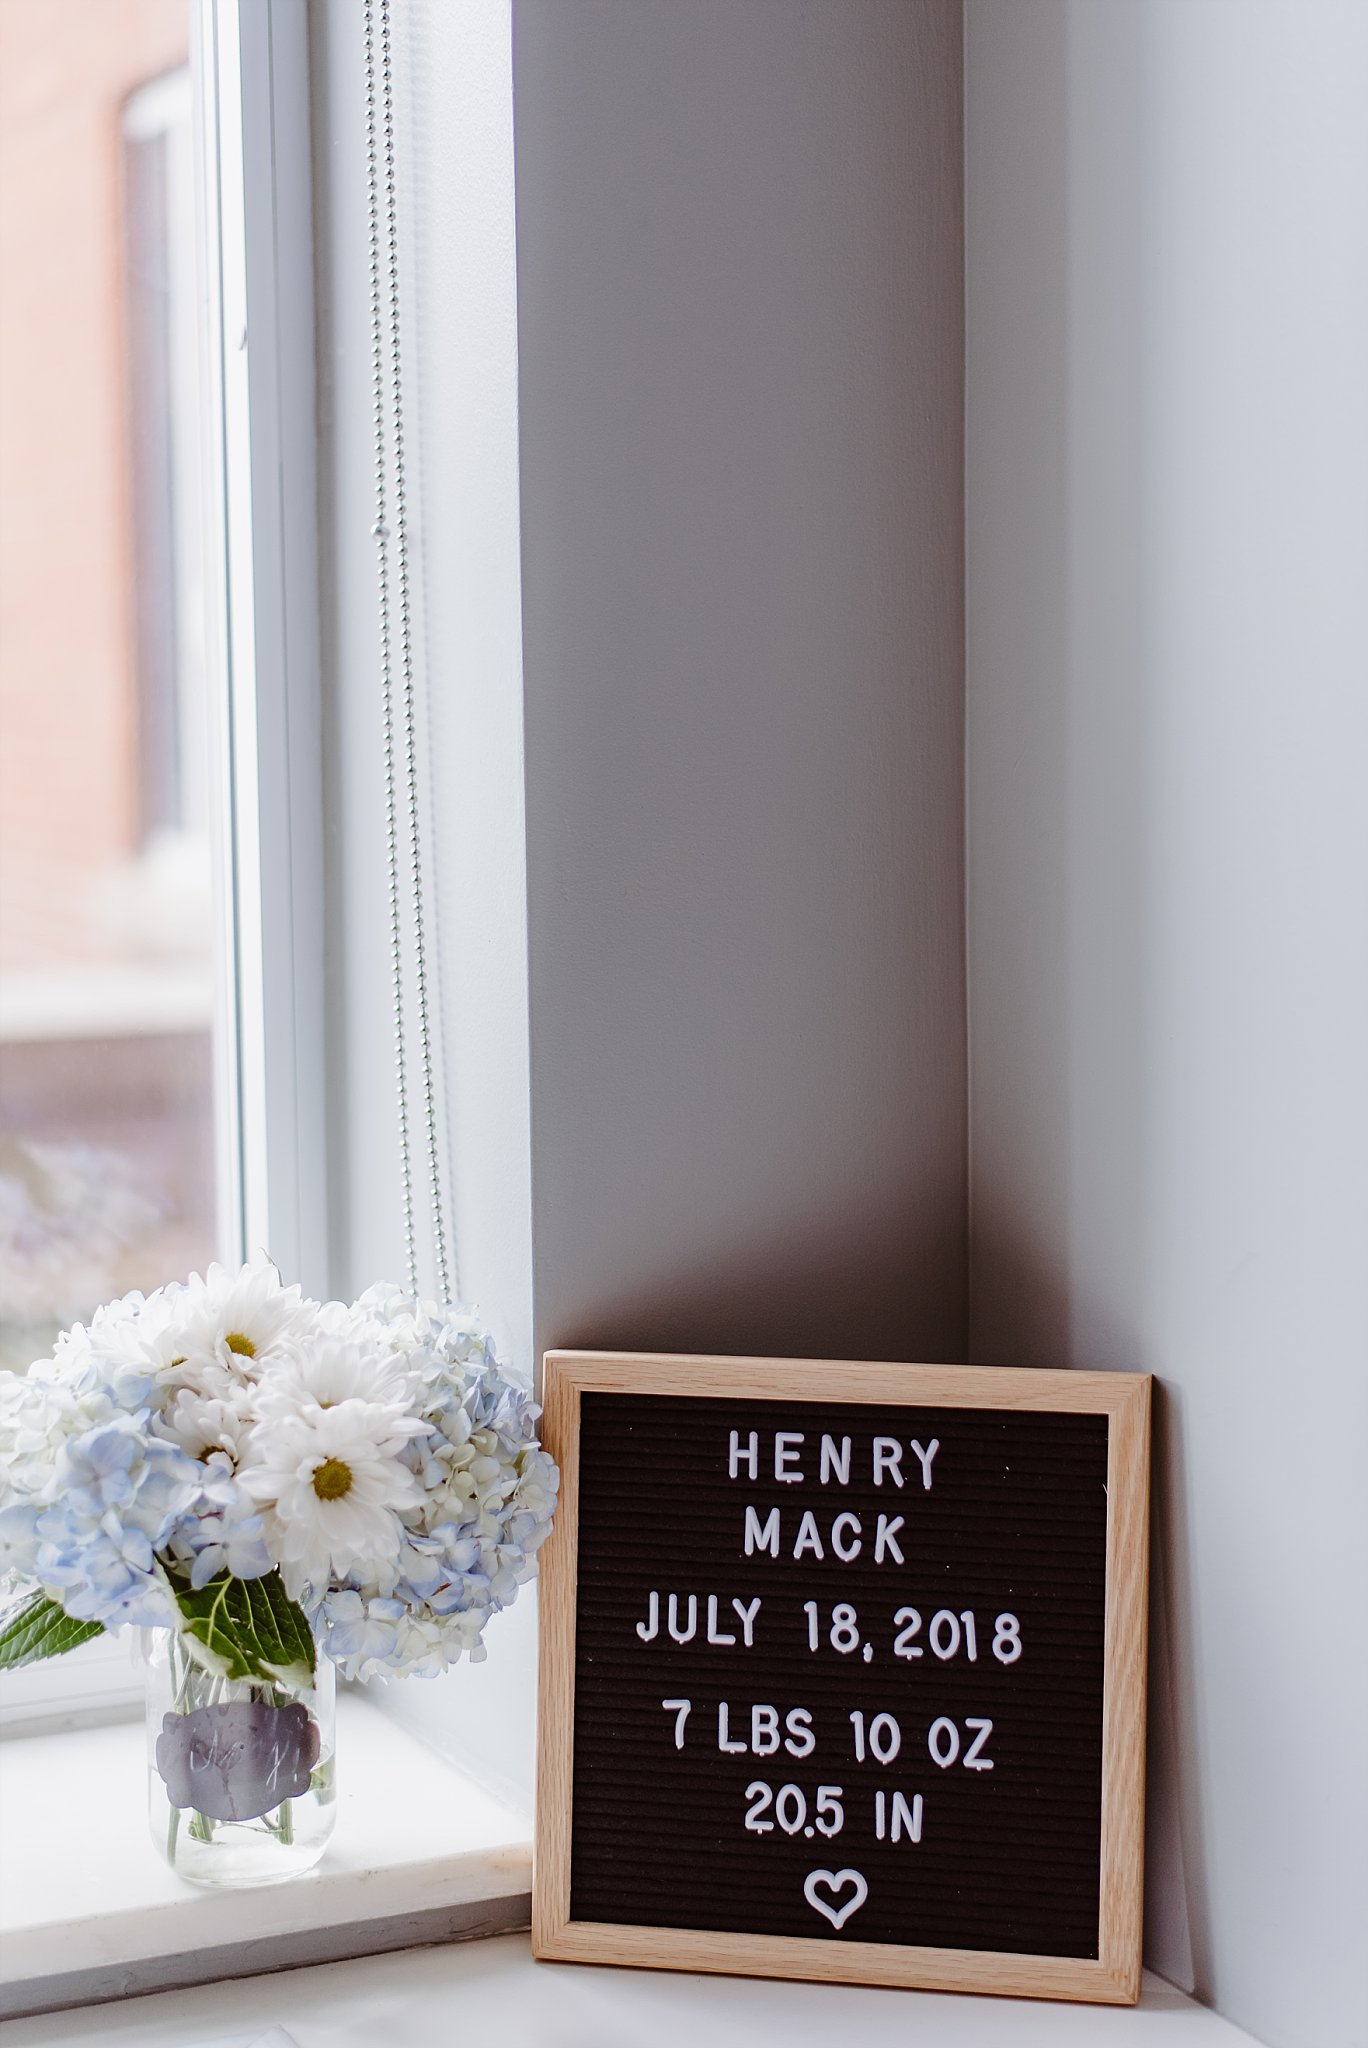 letterboard next to flowers with baby's name birth date and weight